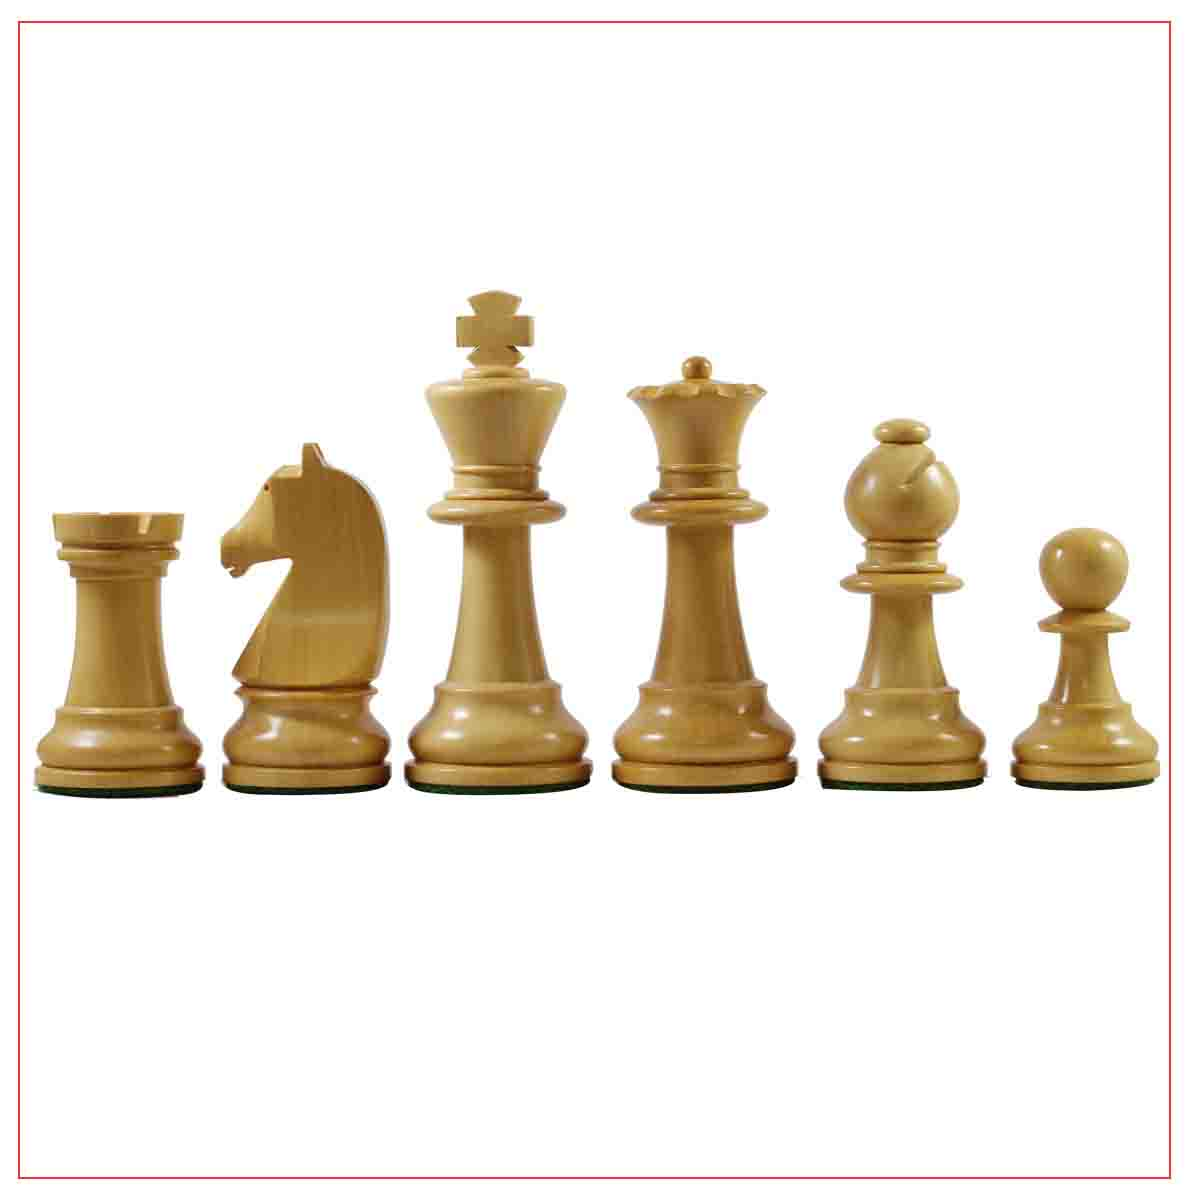 "Chavet 3.75"" Reproduction Chess Set"